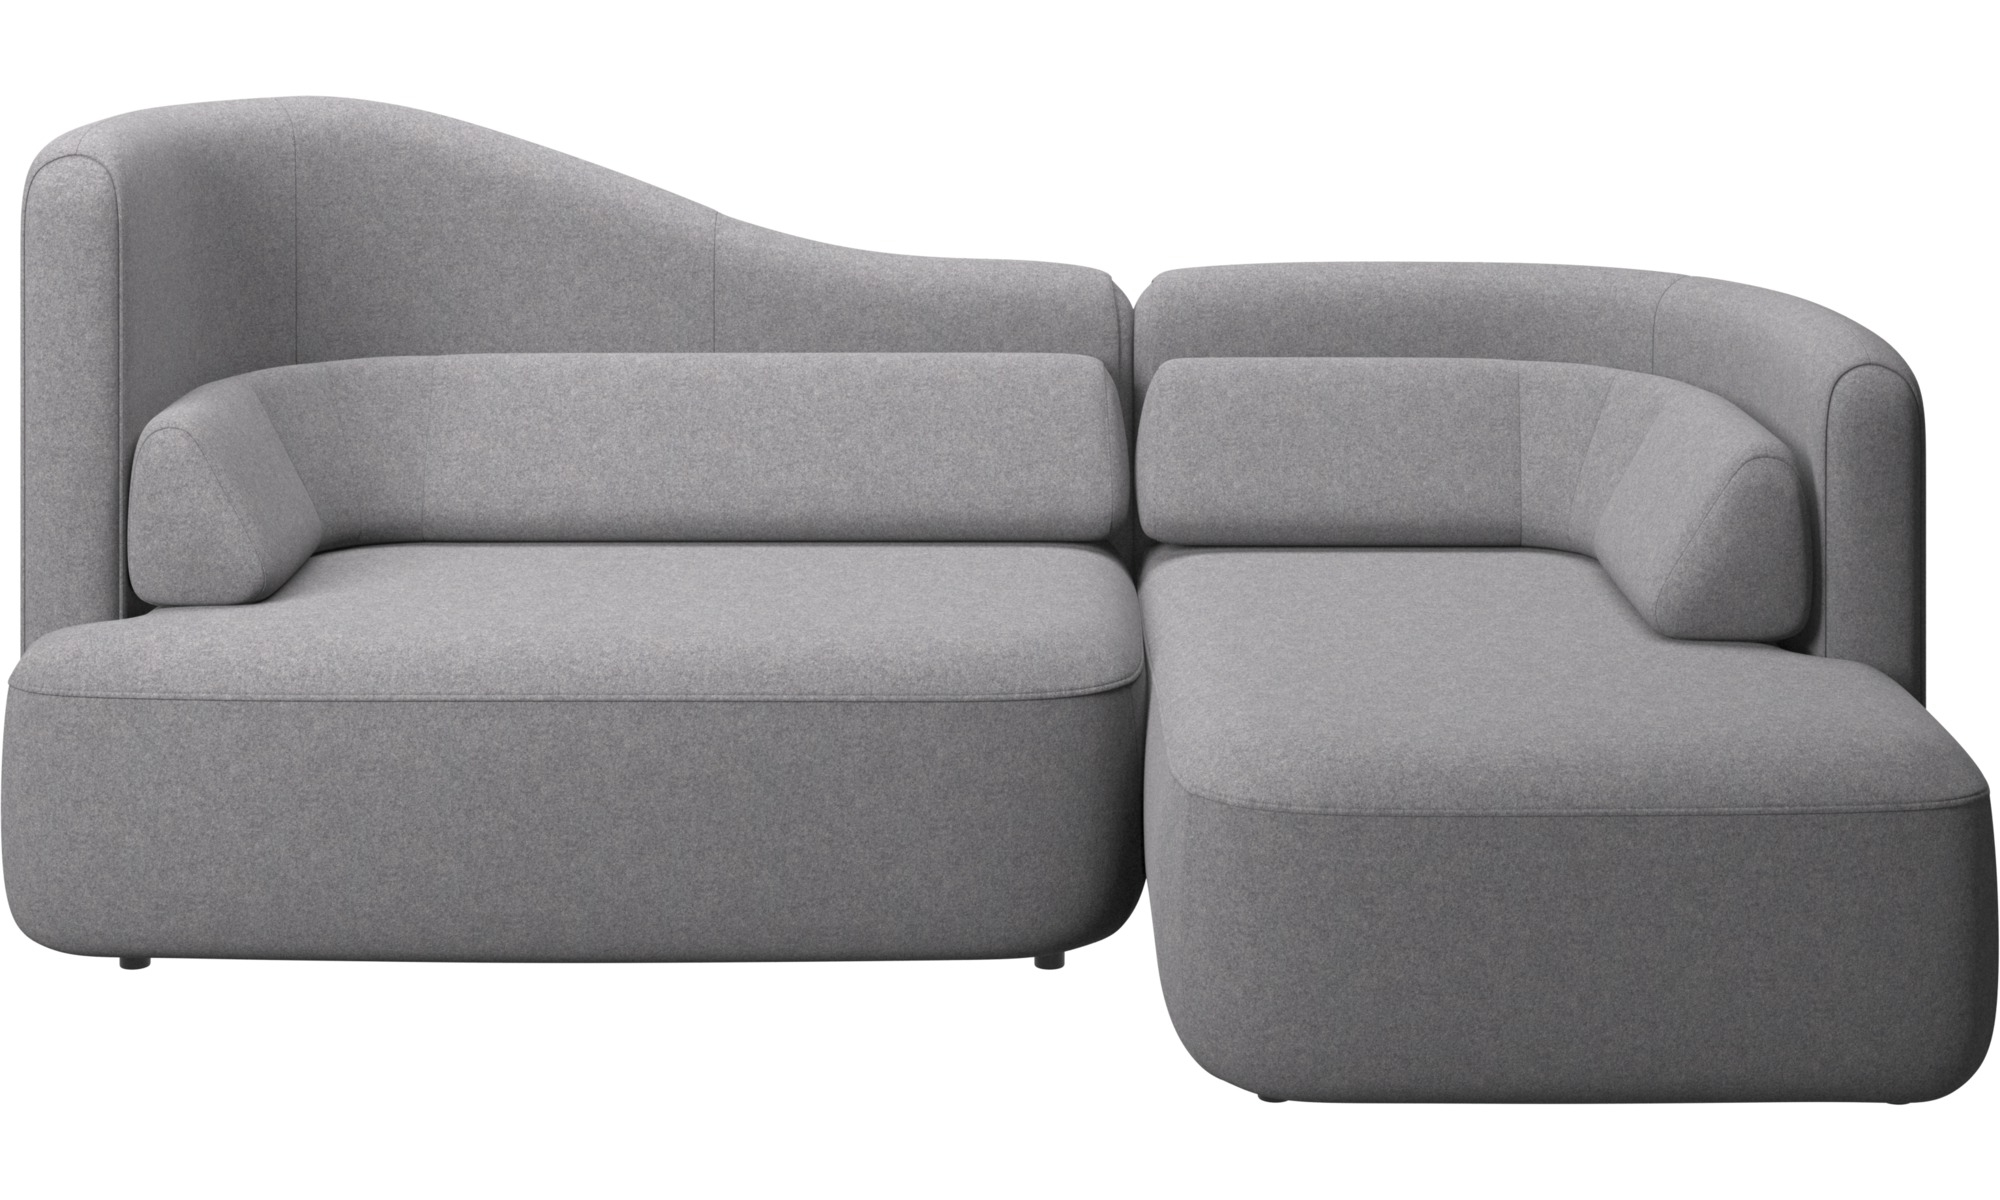 Mini Sofas With Preferred Living Room : Modular Sofas For Small Spaces Space Saving Beds (View 7 of 15)